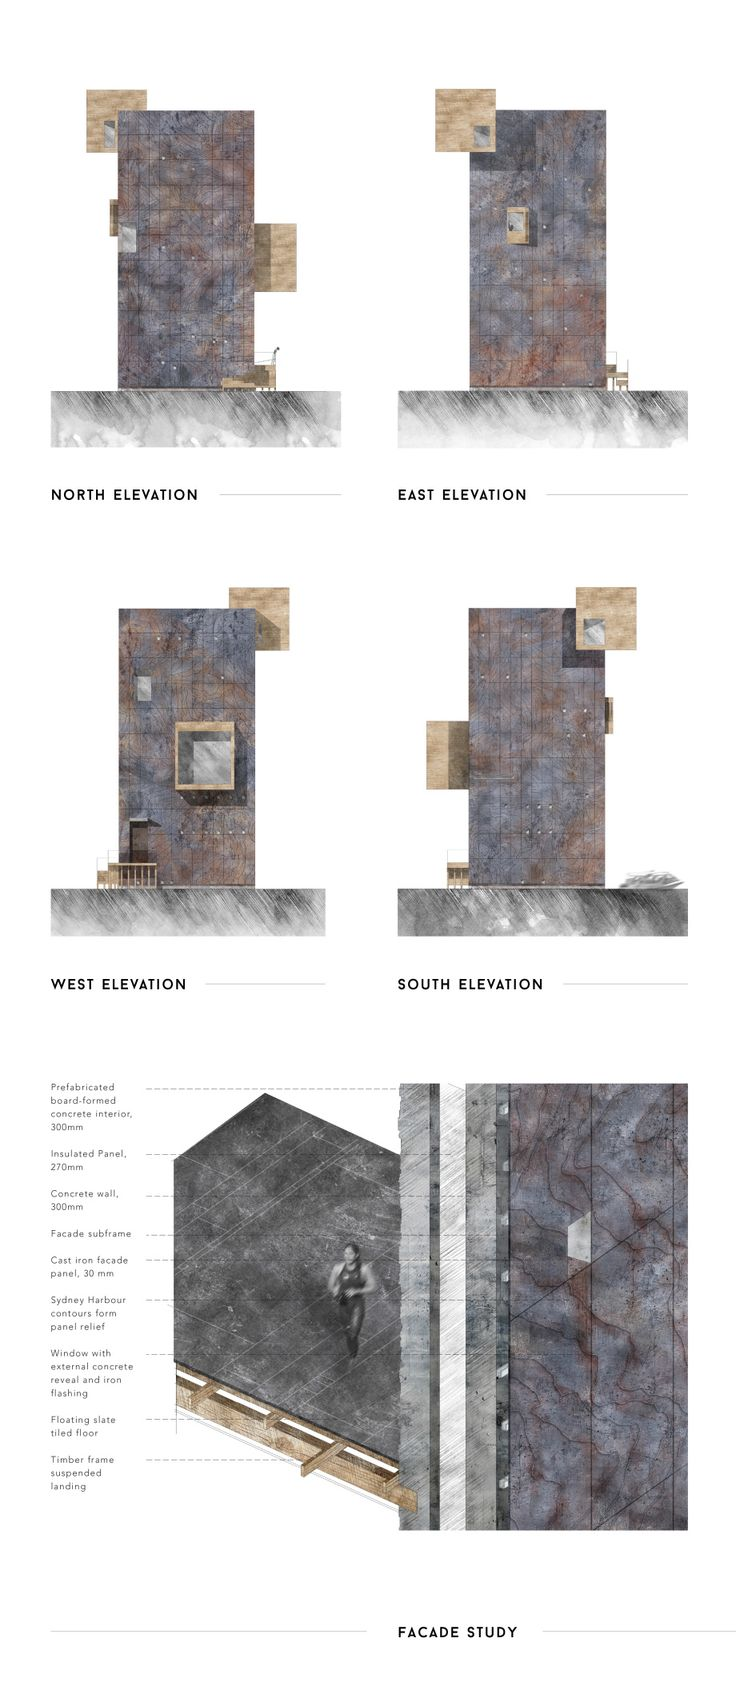 Sydney Harbour - elevations + facade study